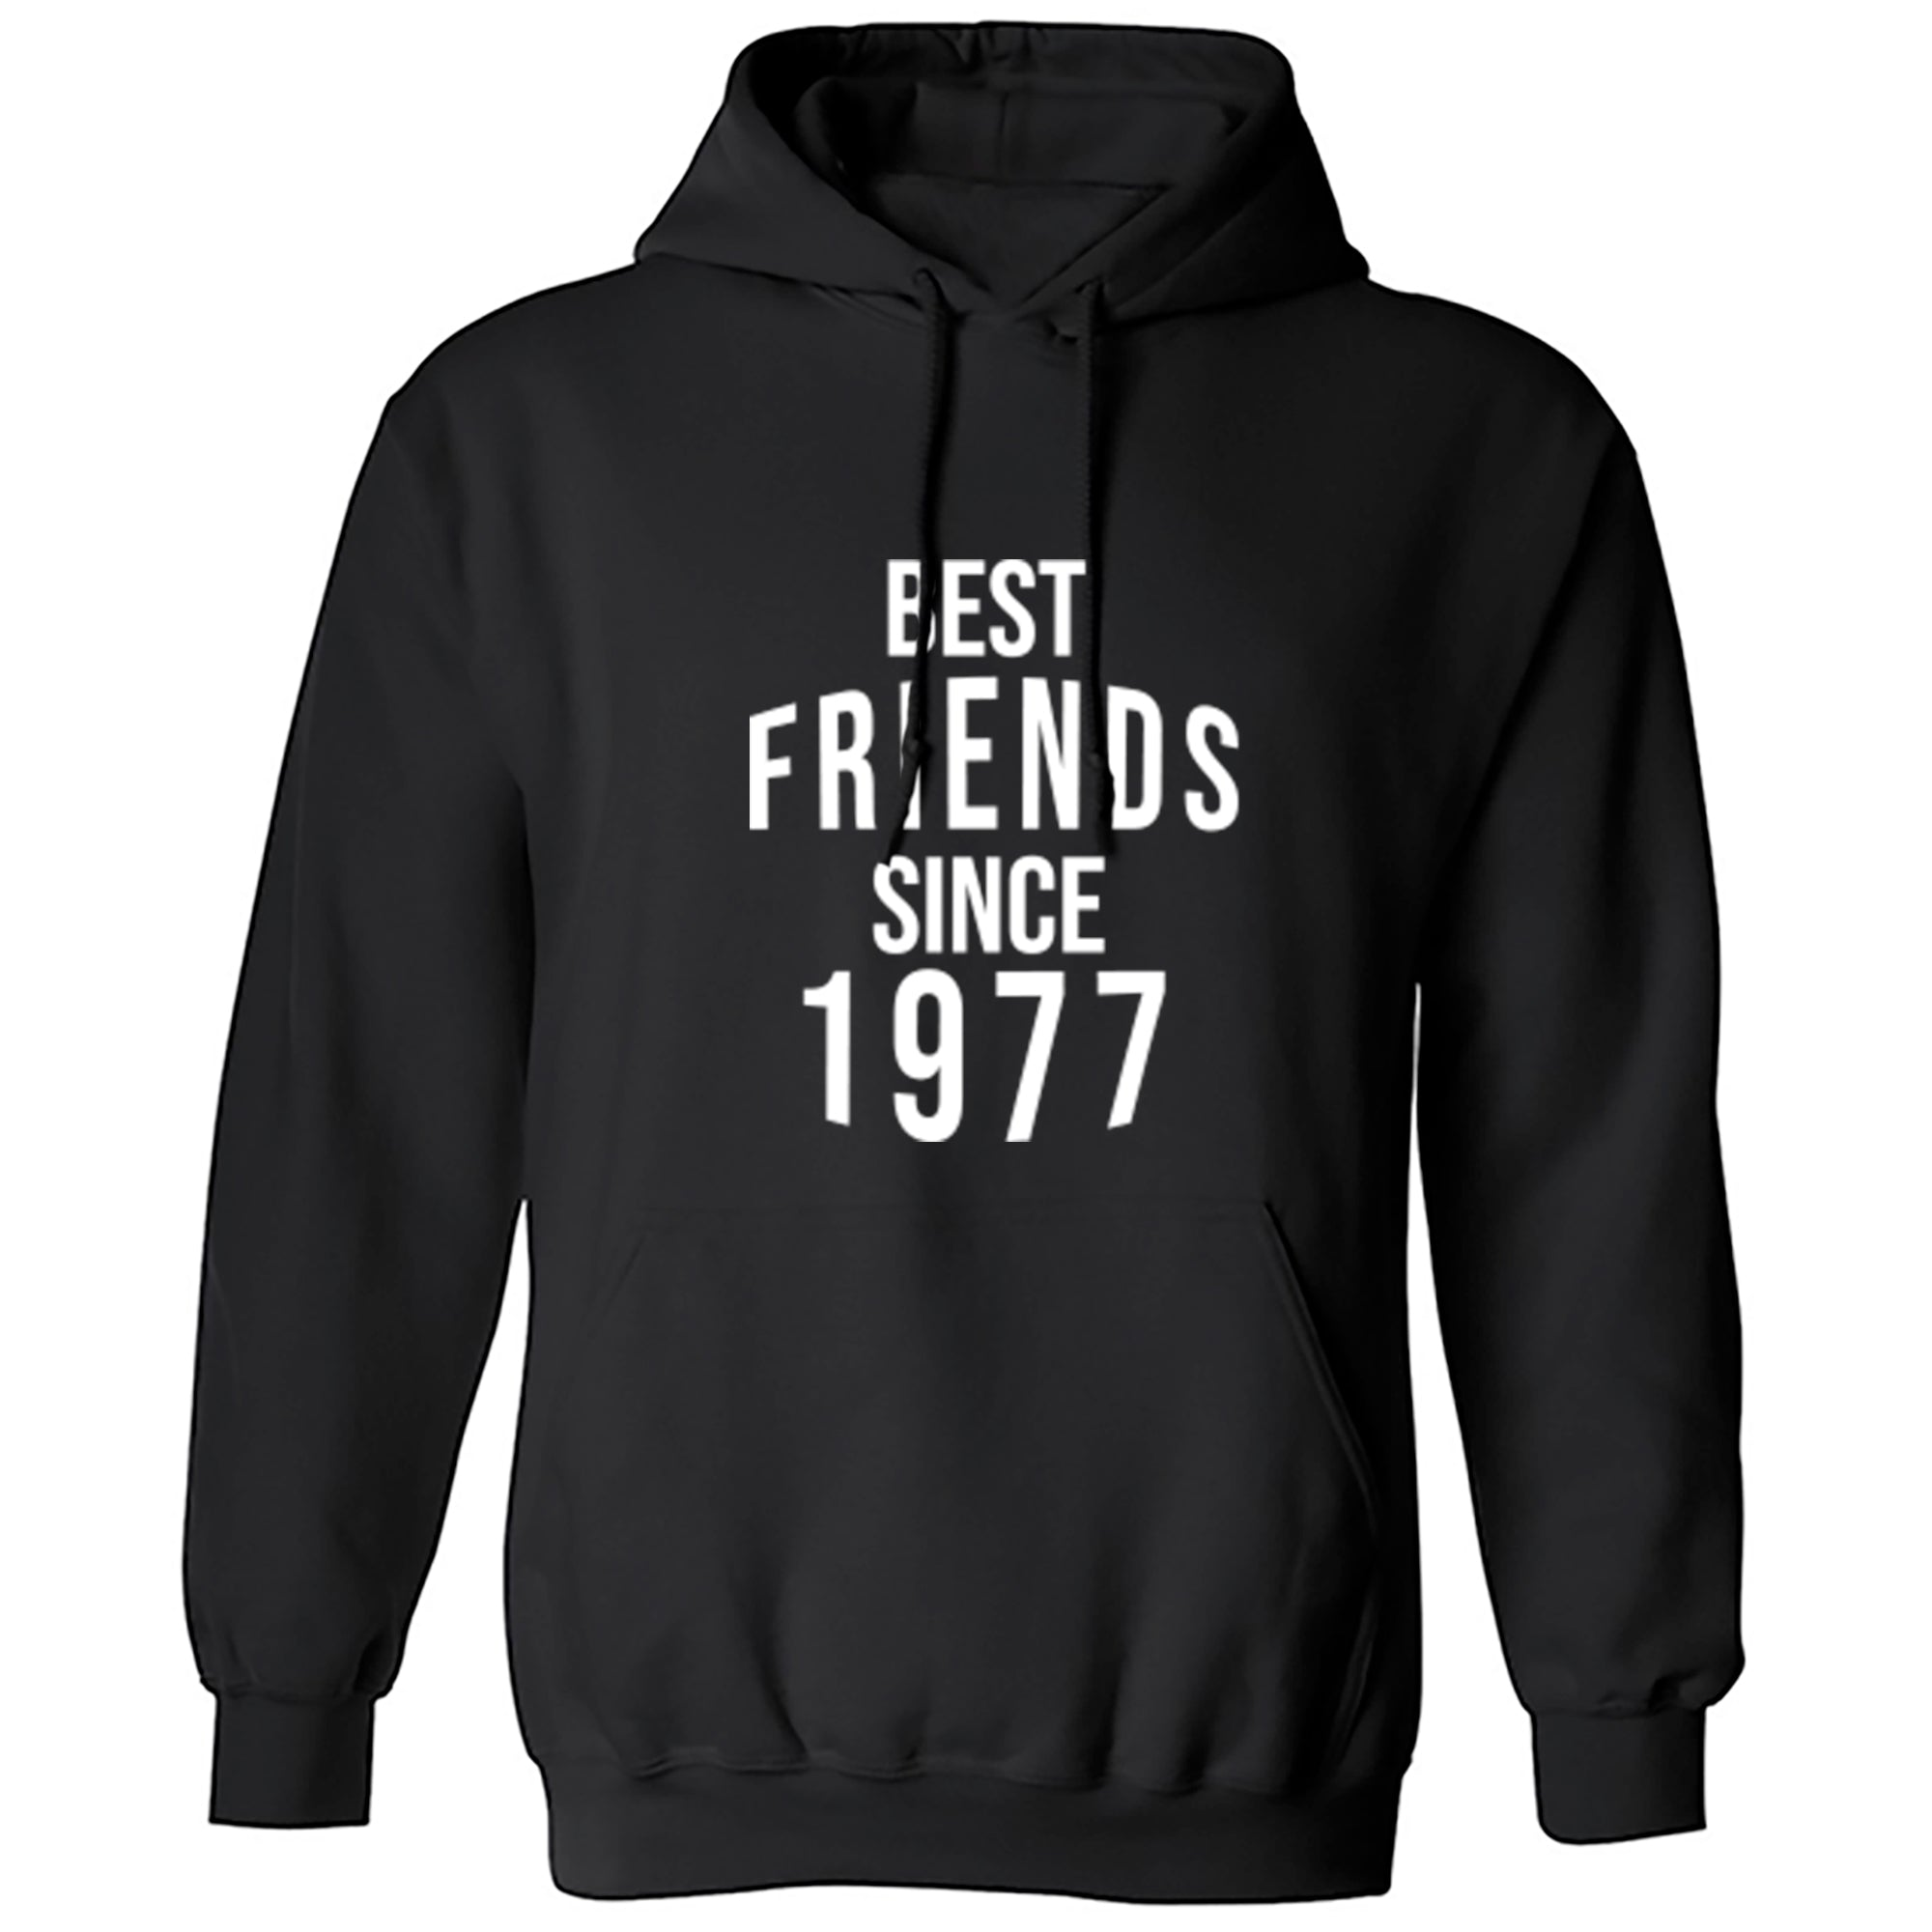 Best Friends Since 1977 Unisex Hoodie S0556 - Illustrated Identity Ltd.